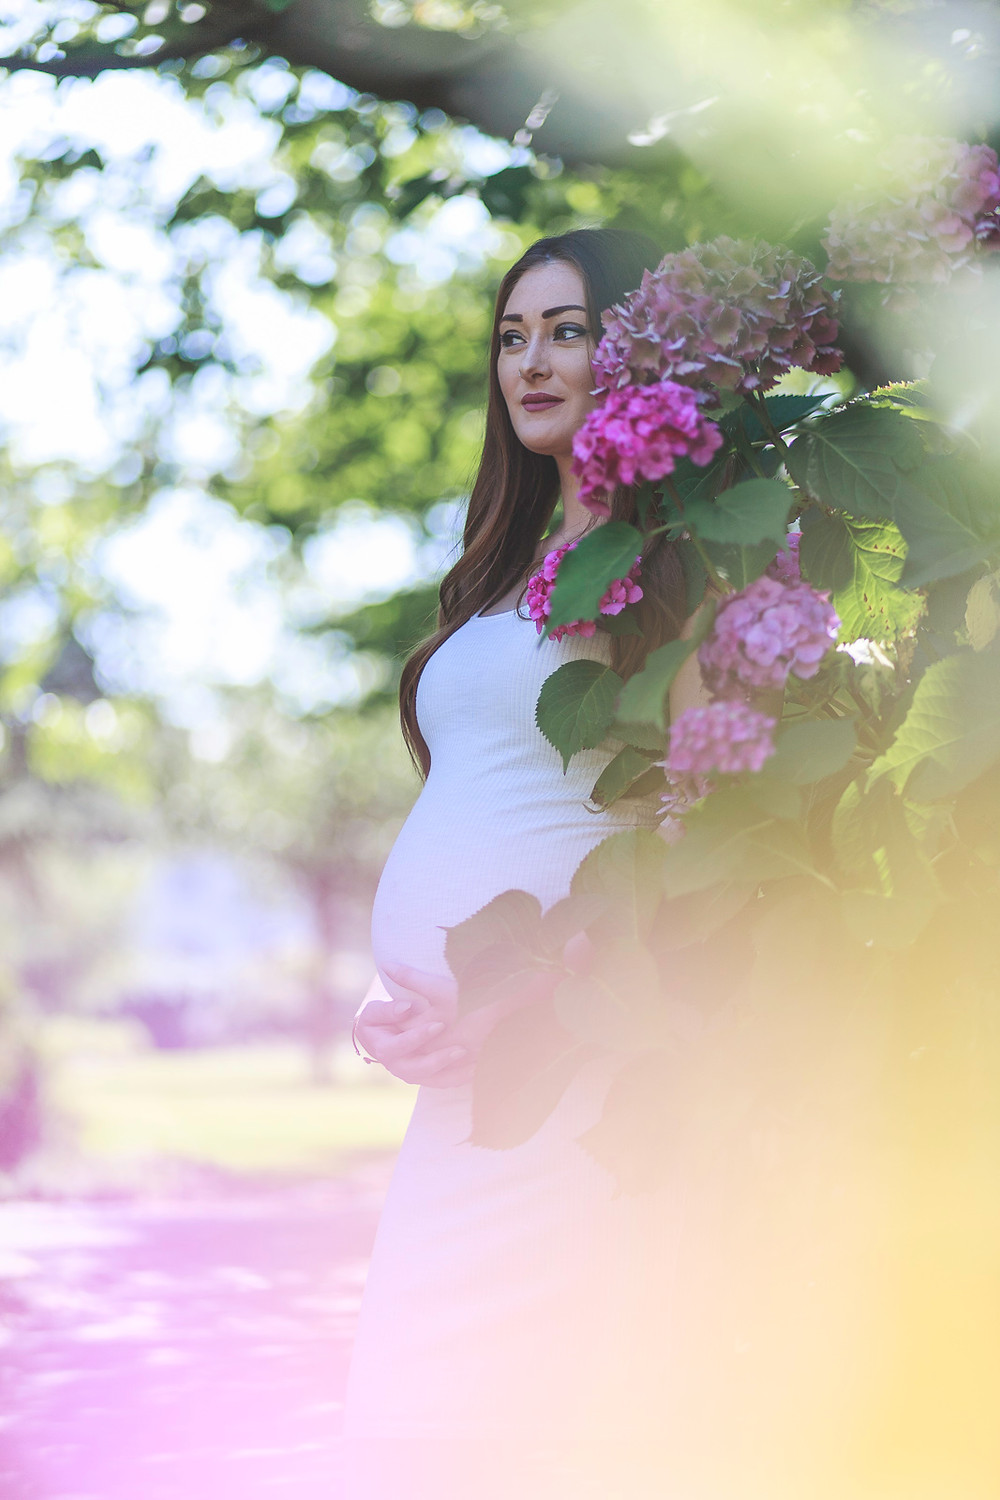 Belinda's bump photoshoot in South Wales, Cardiff maternity photography by photographer Taz Rahman